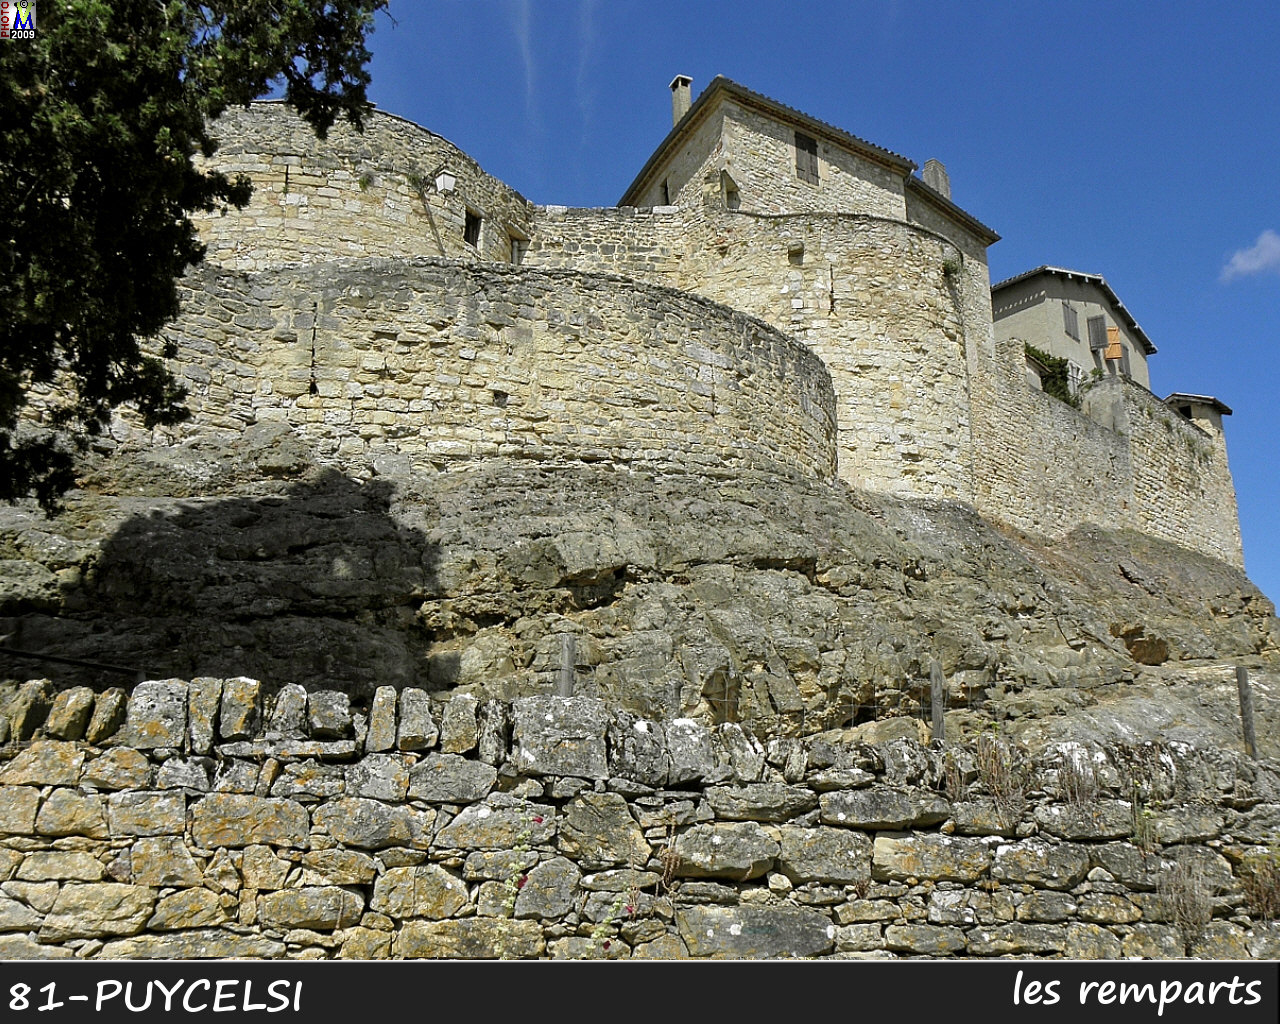 81PUYCELSI_remparts_100.jpg